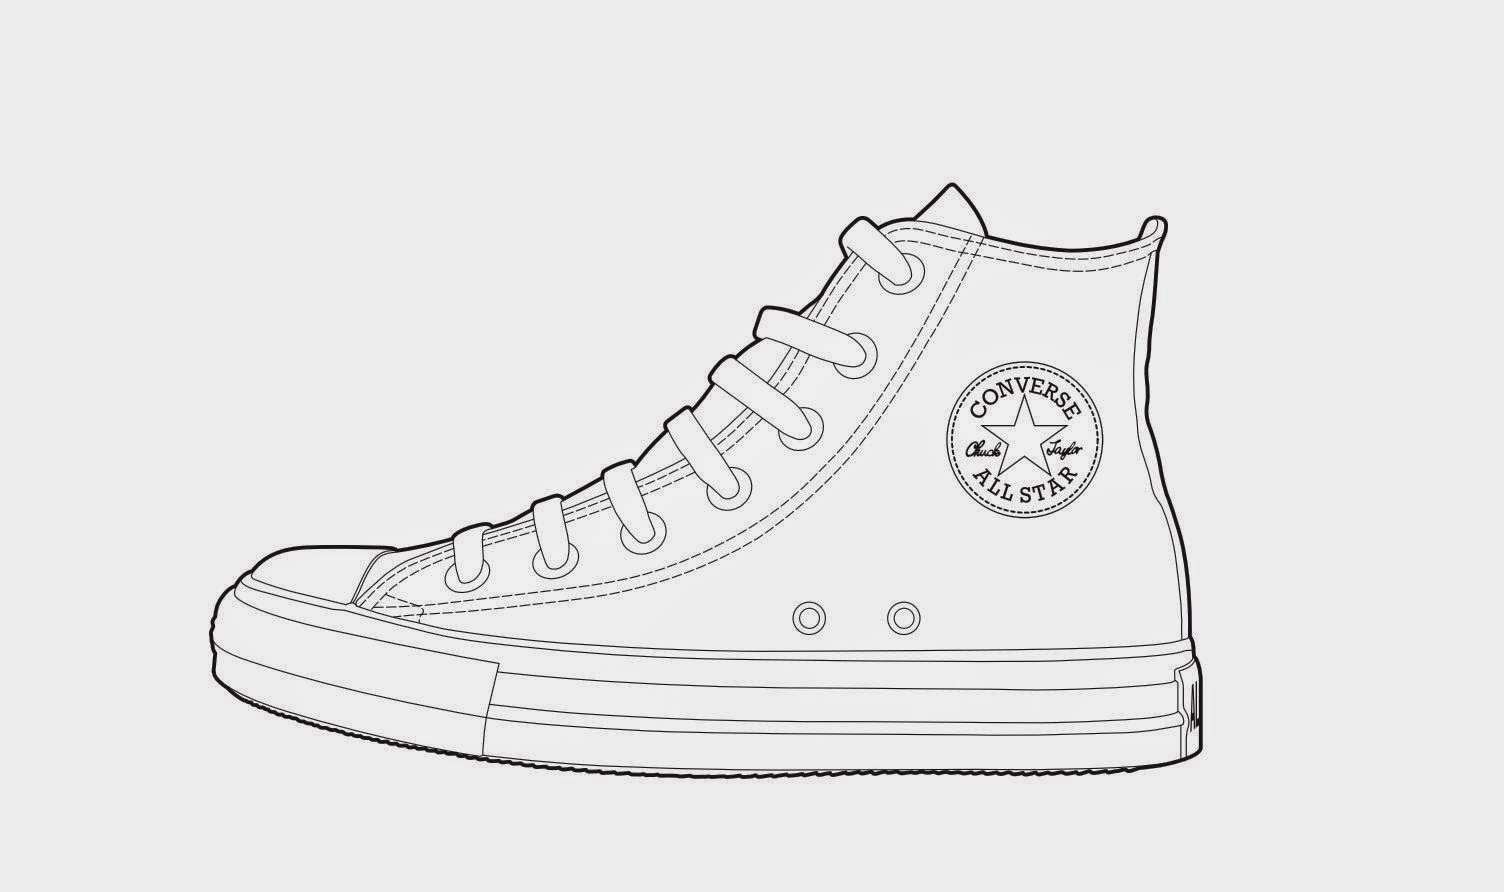 Converse Shoes Stencil Drawing